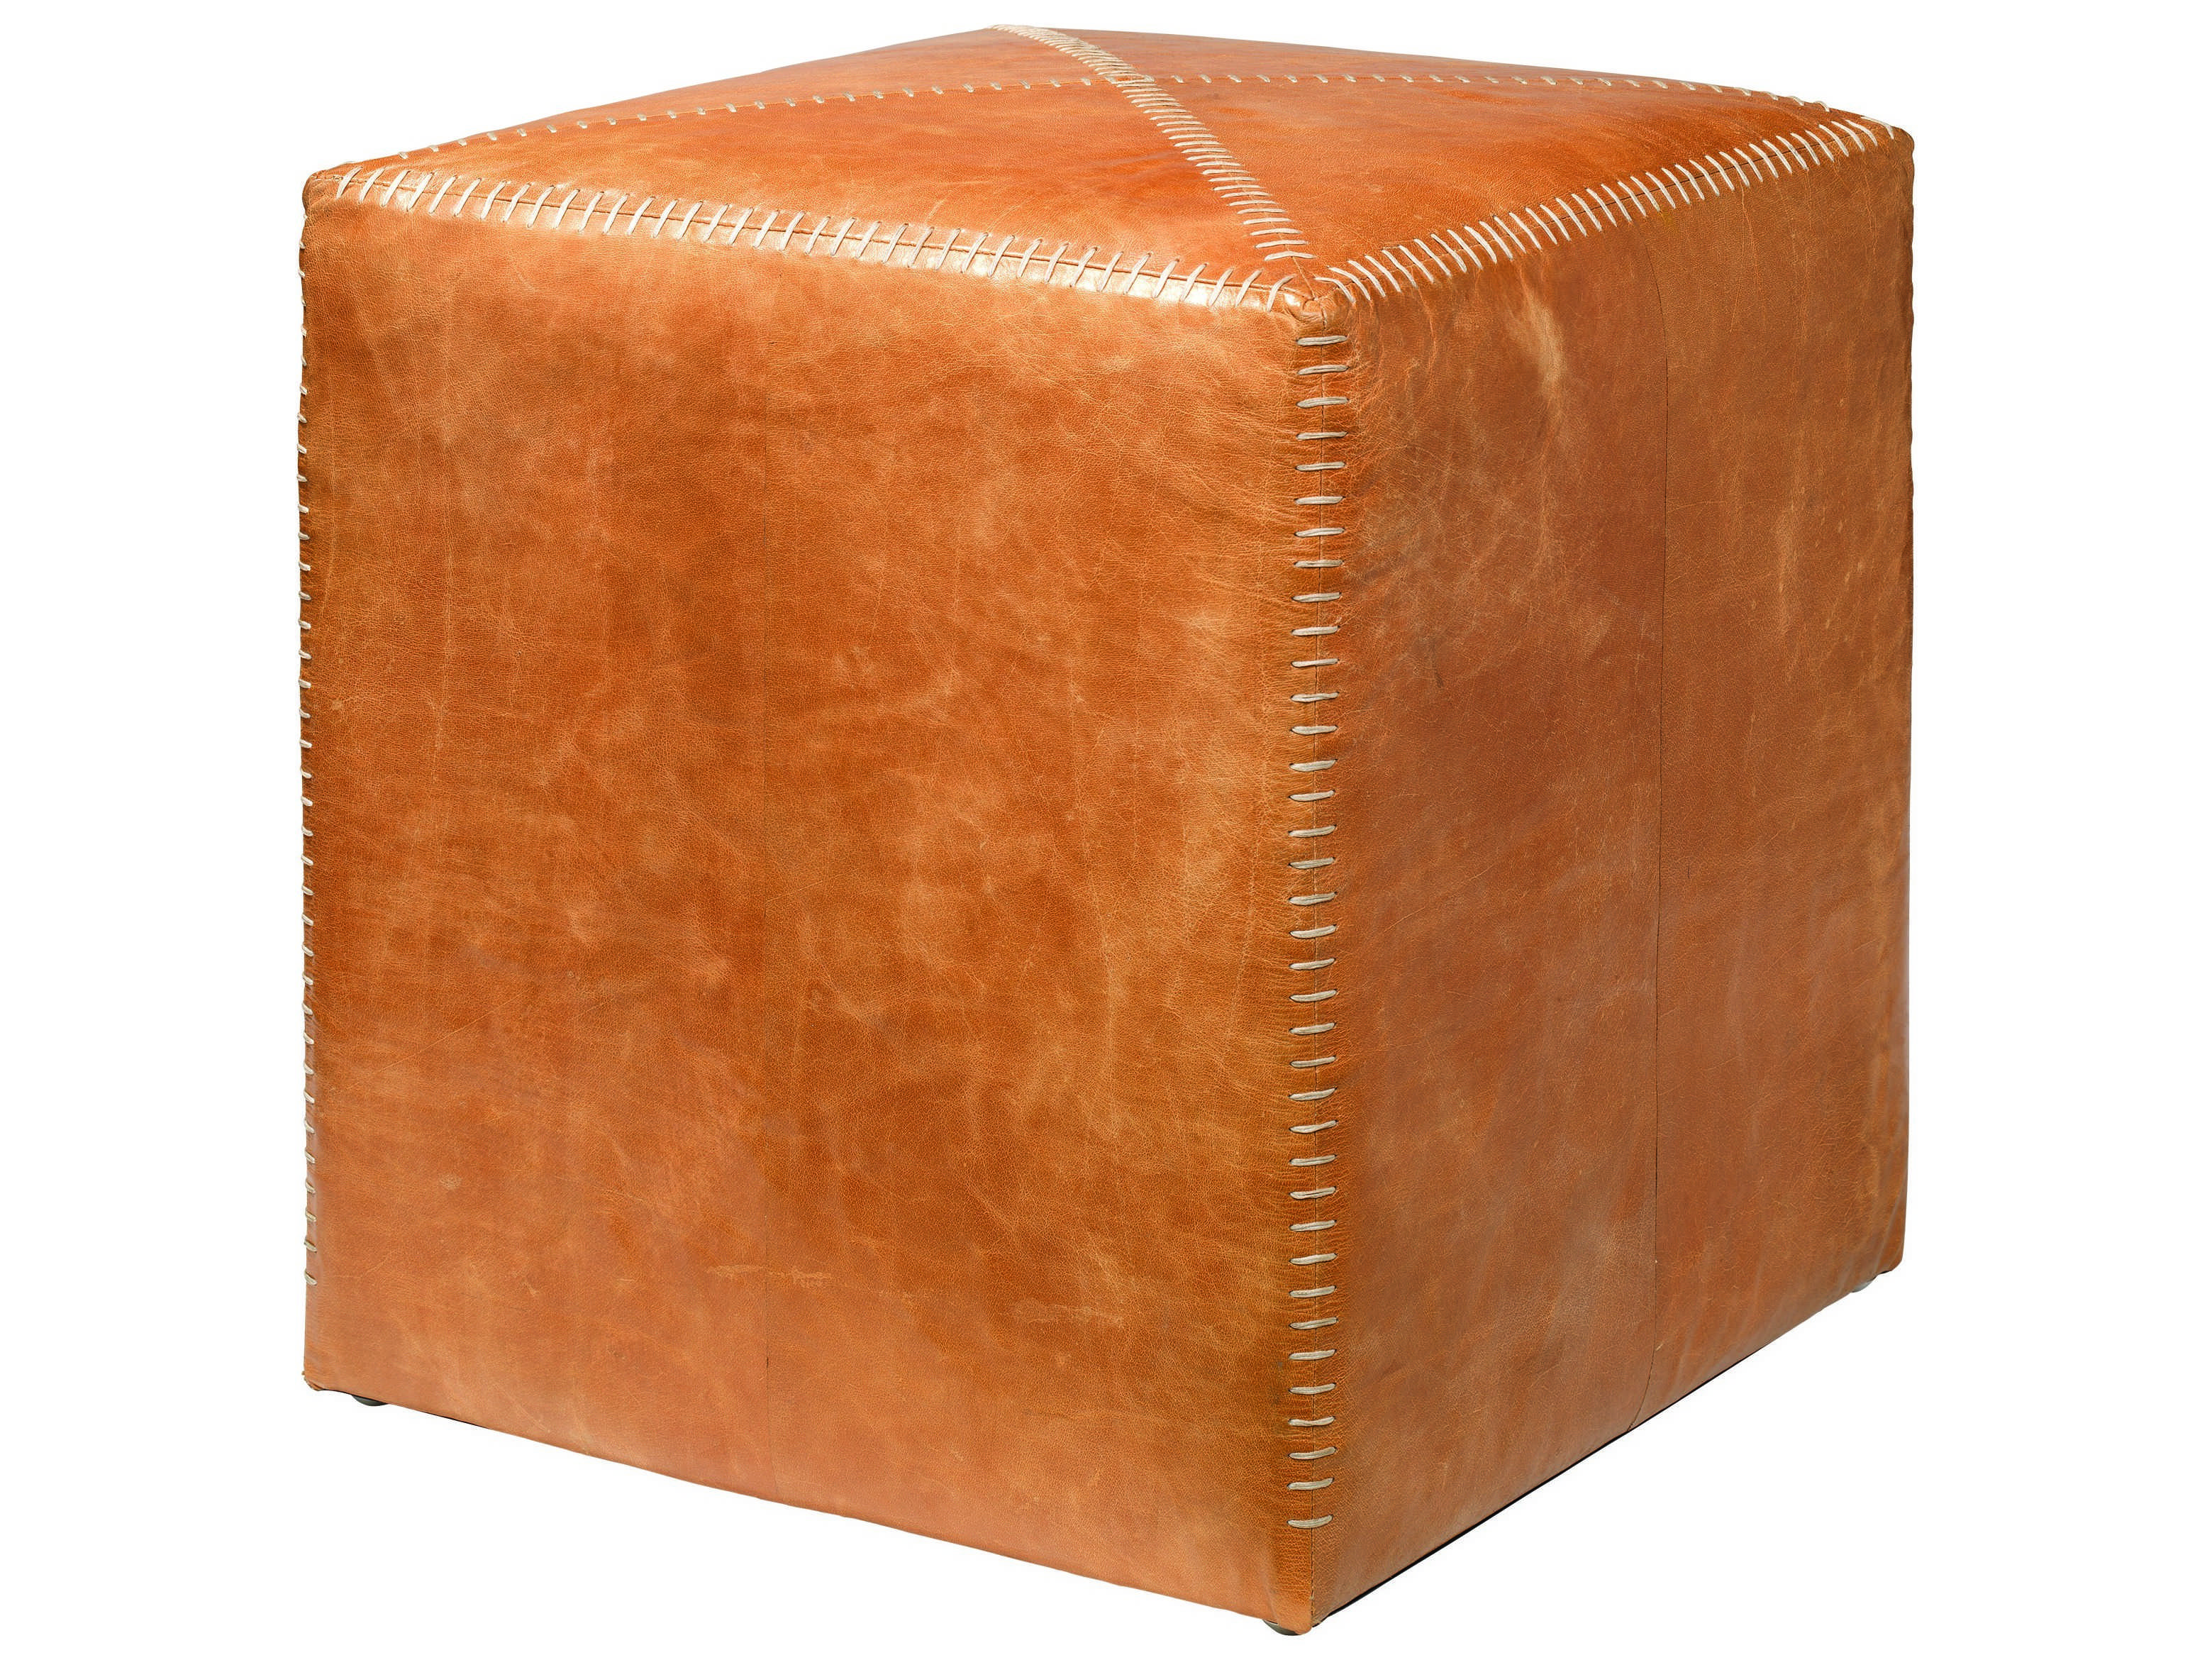 jamie young company small buff leather ottoman